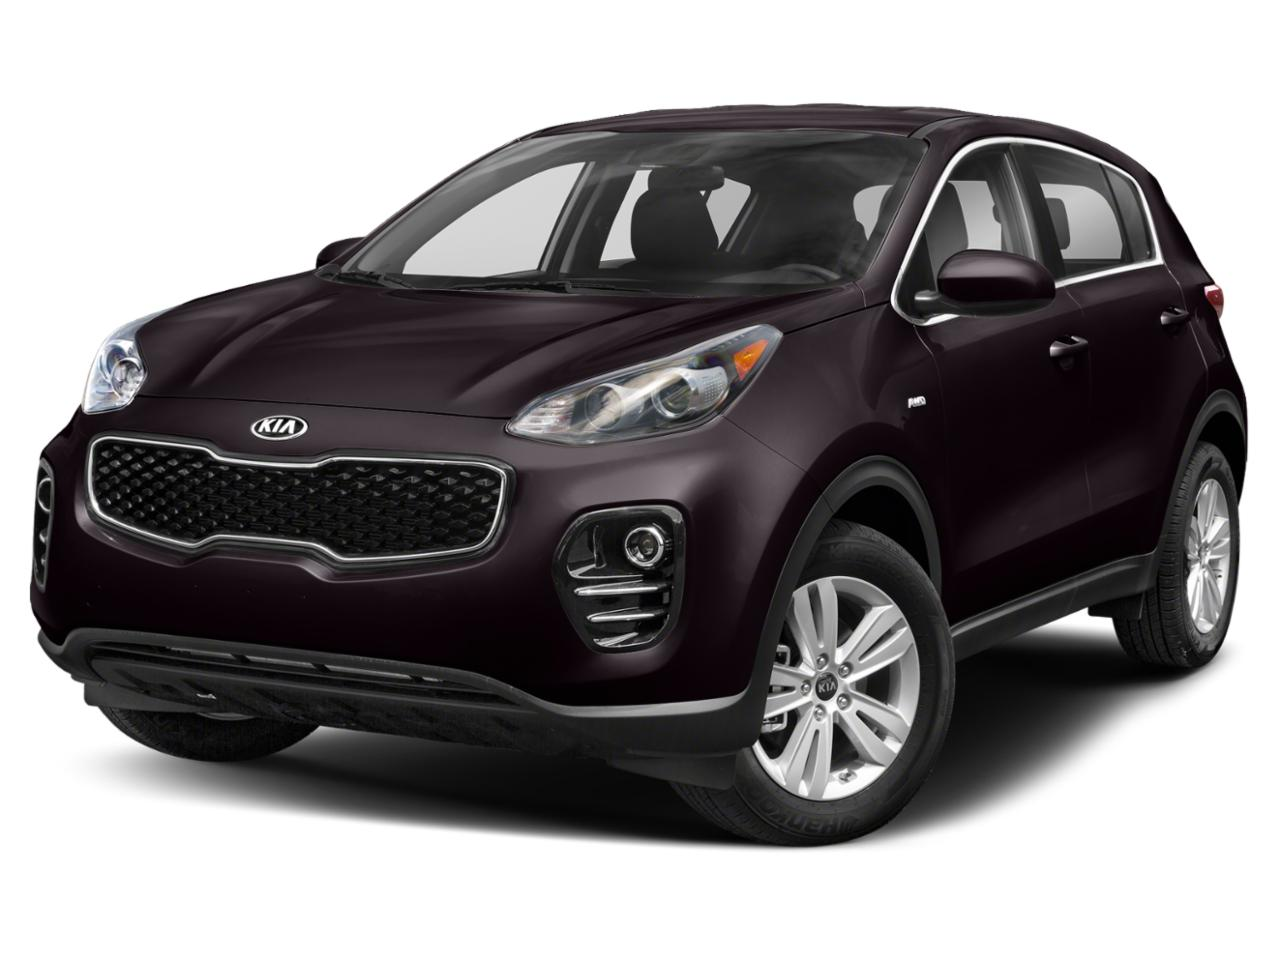 2018 Kia Sportage Vehicle Photo in Bowie, MD 20716